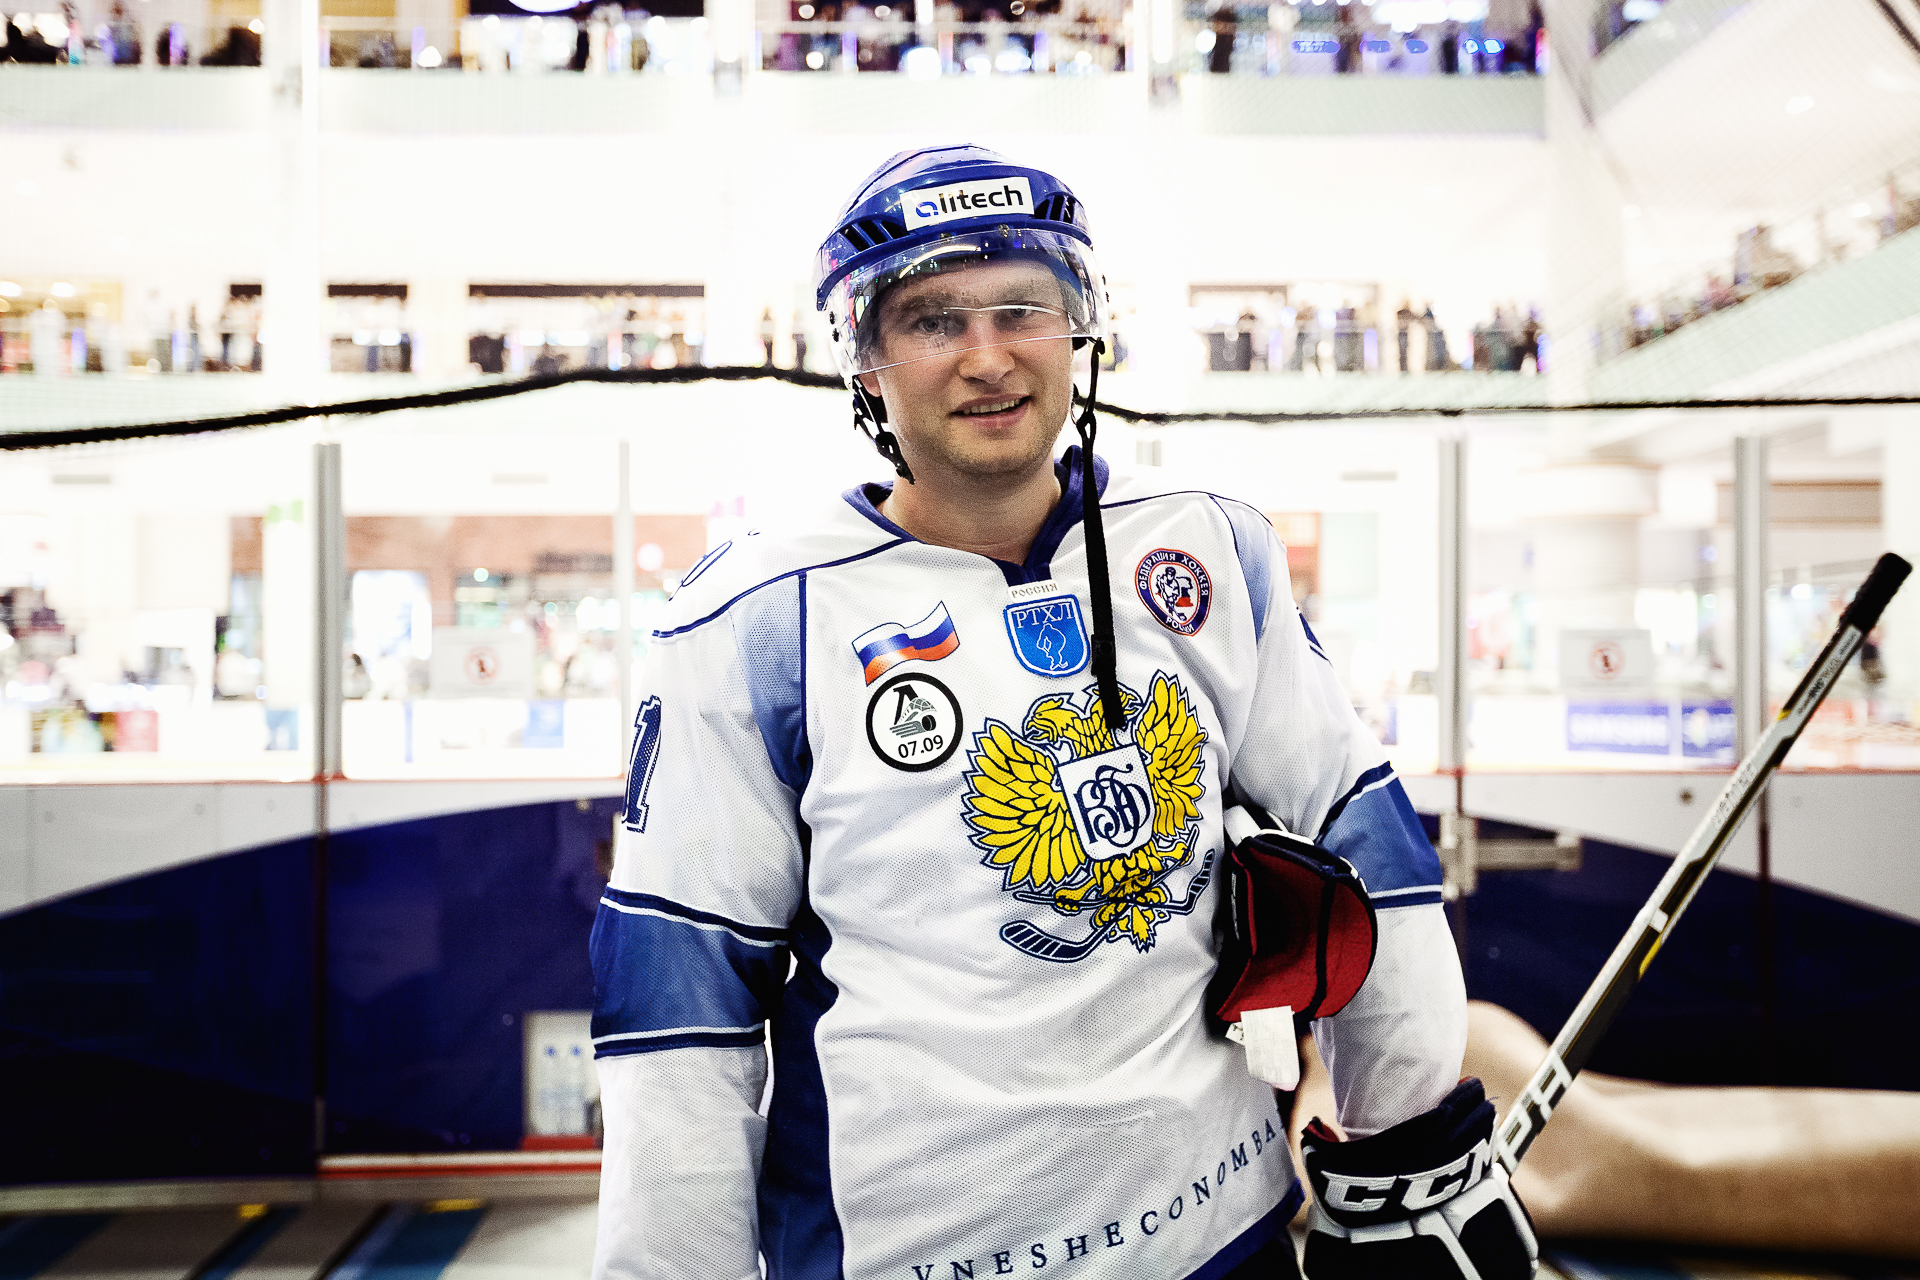 Gökhan_Orhan_Portfolio_Sports_Ice Hockey-2